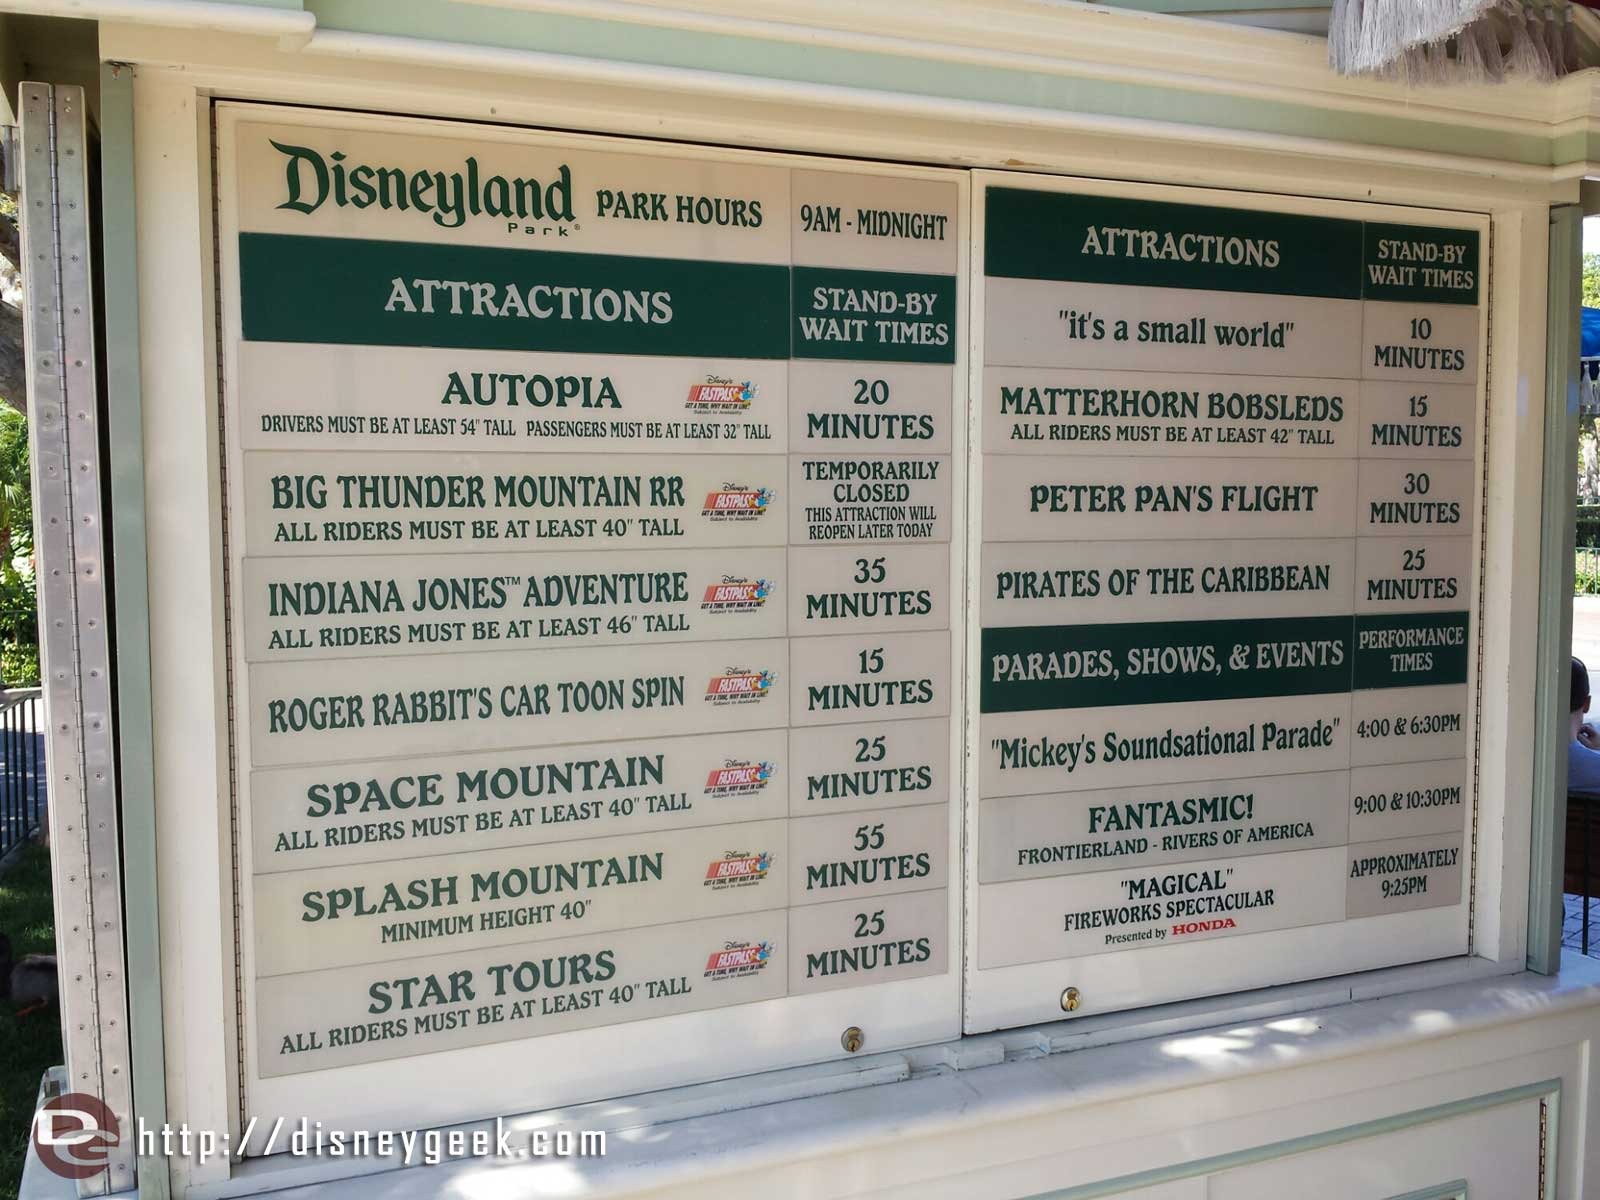 #Disneyland waits as of 2:49pm